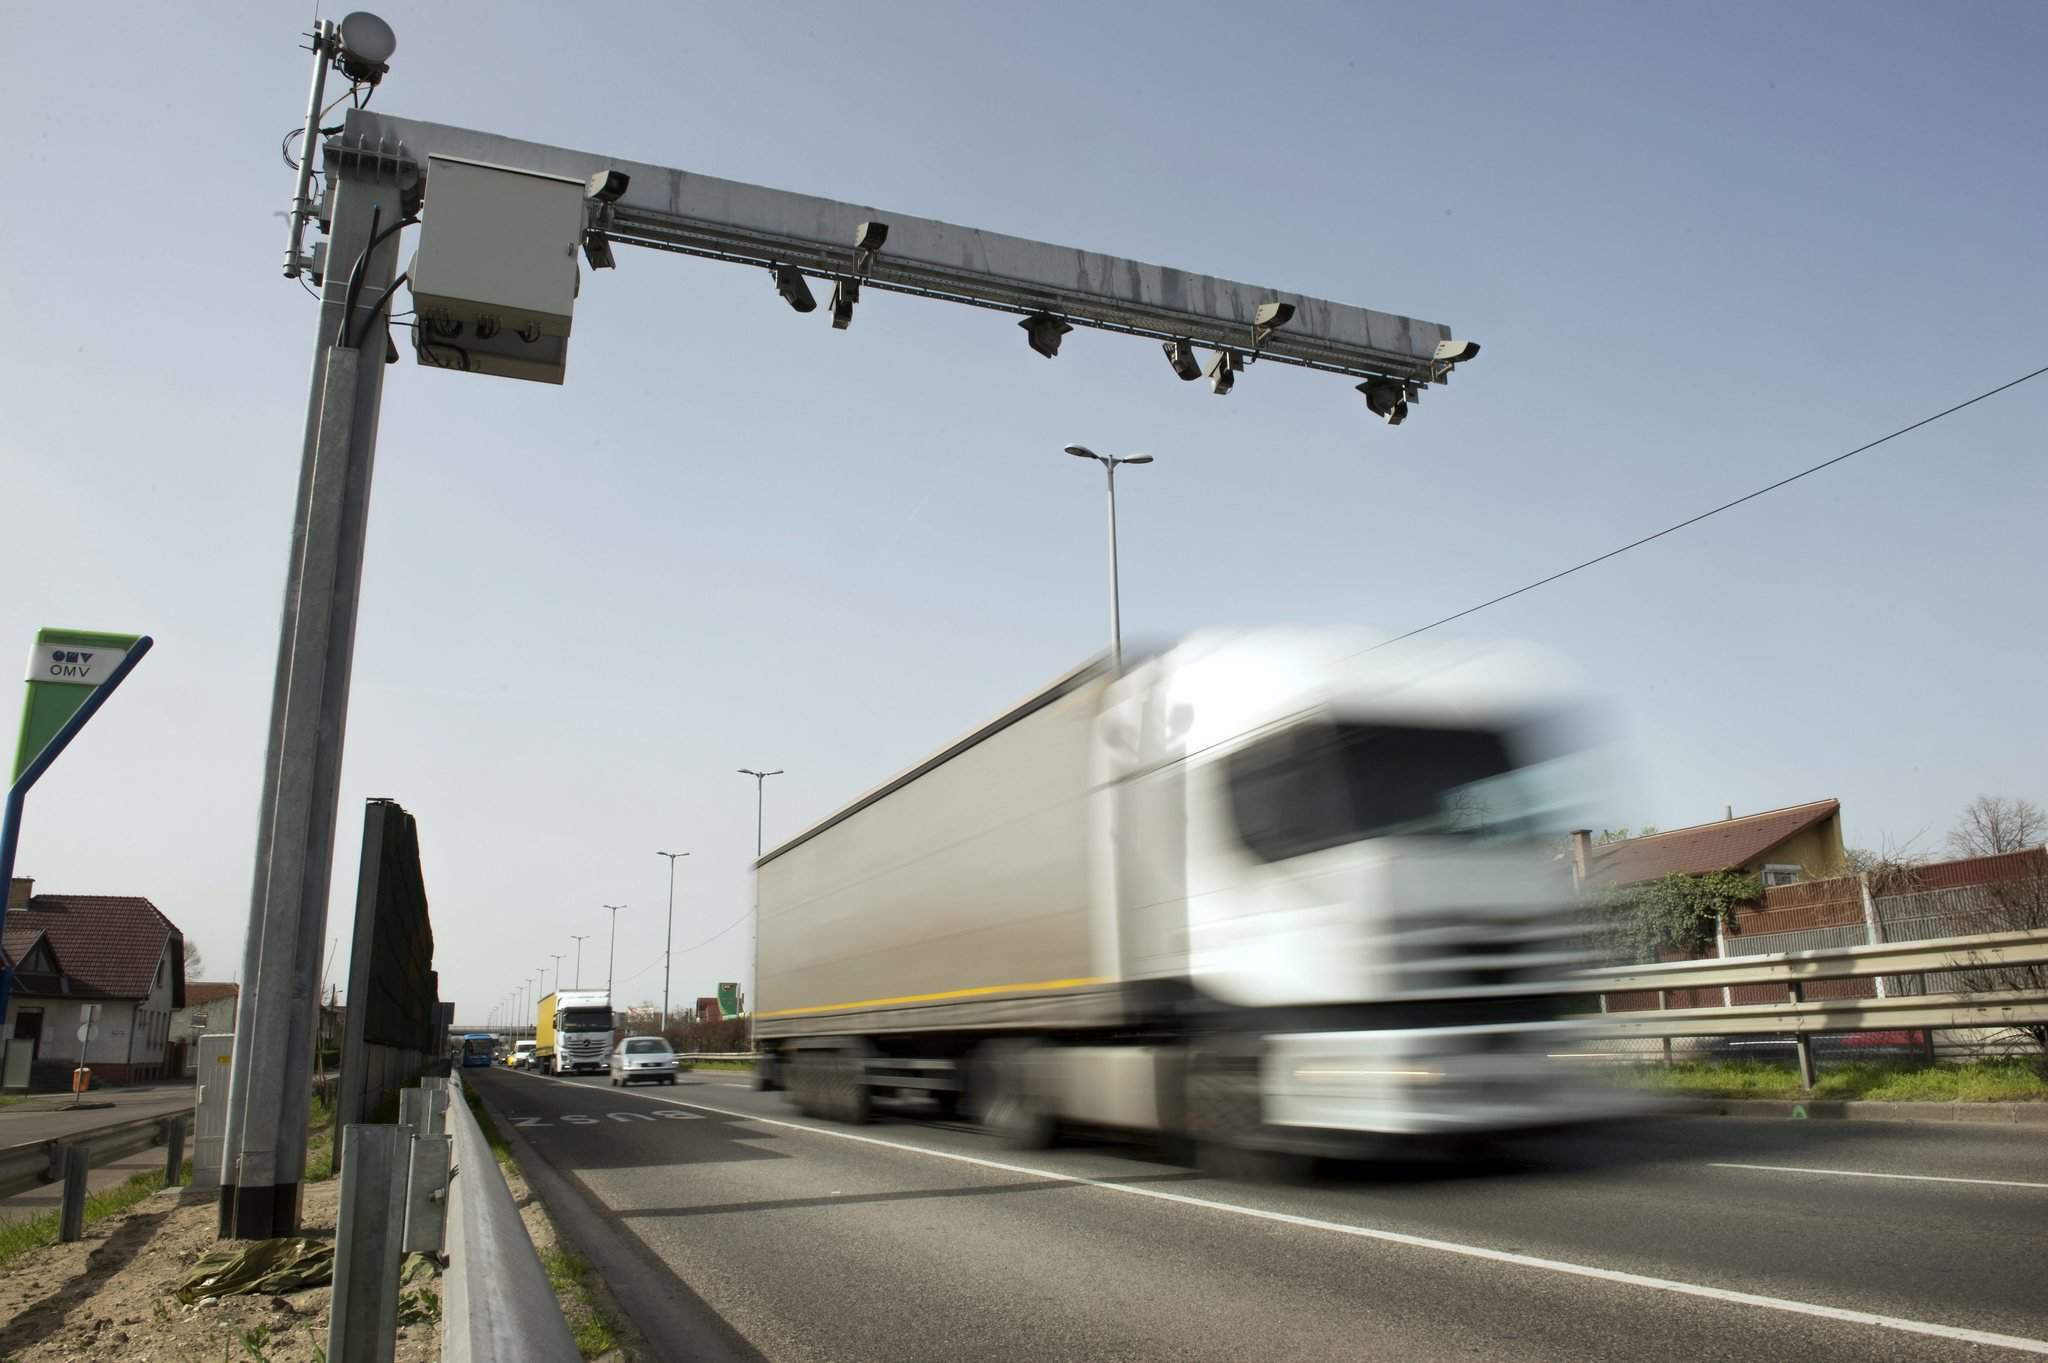 Super speedcams on the road